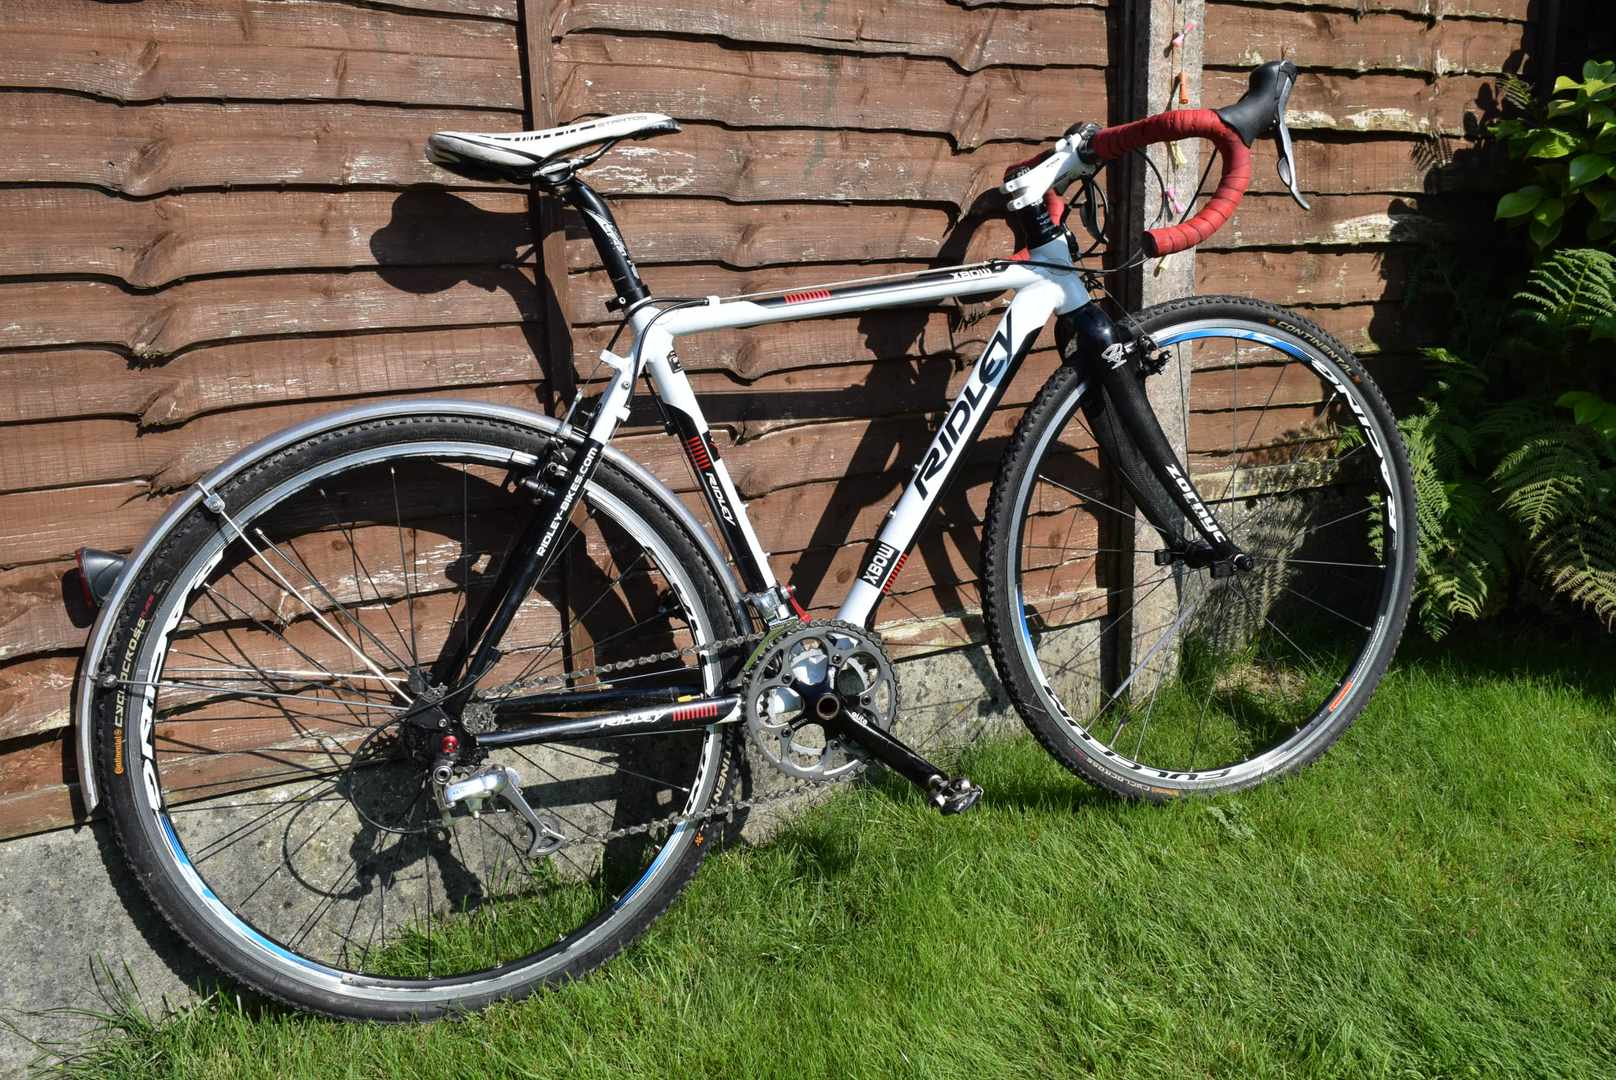 Ridley X-bow cyclocross/gravel bike - Classifieds for sale